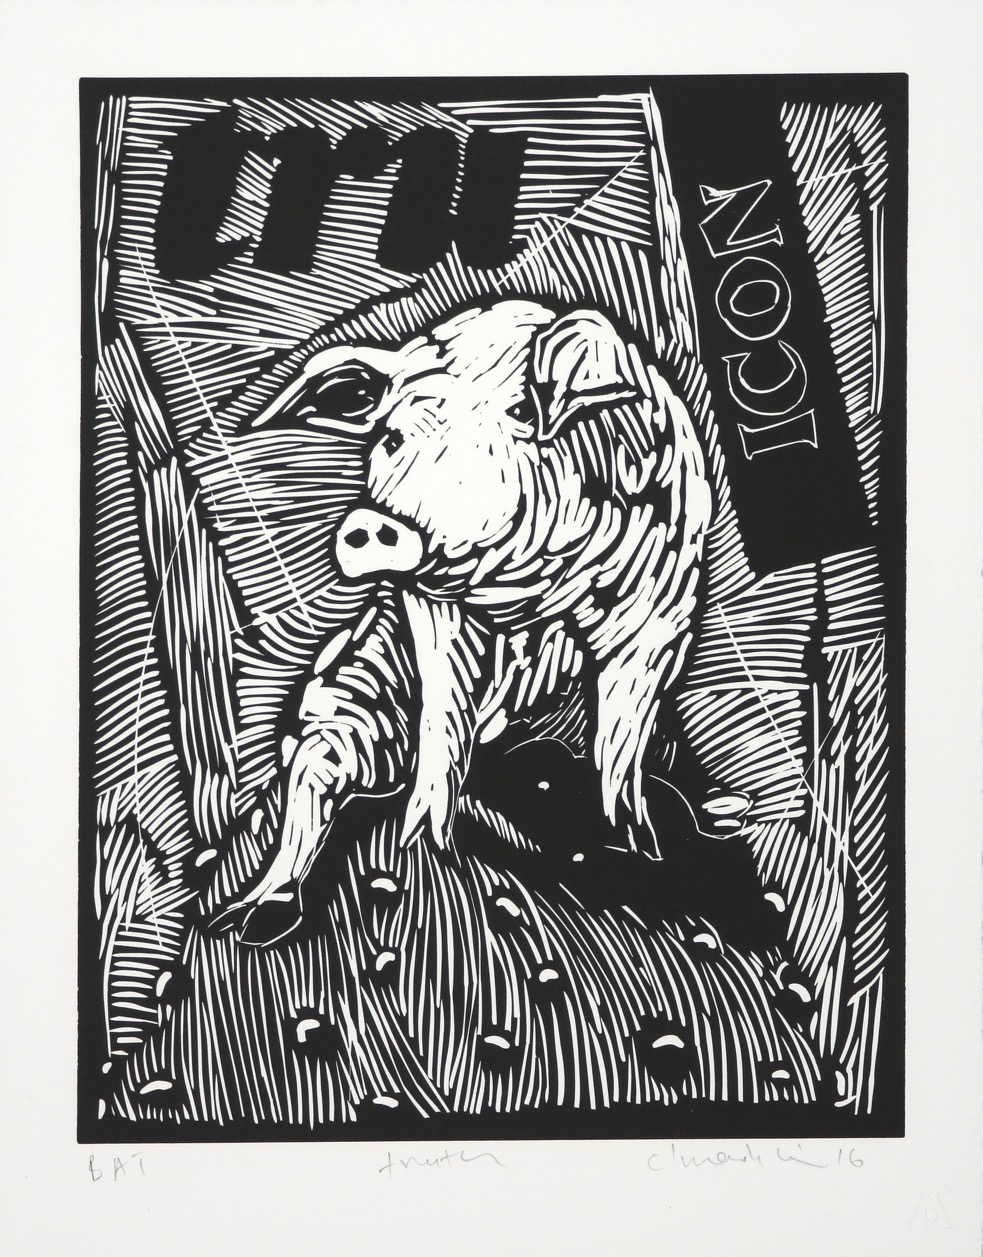 Seated pig facing forward on rounded form with random text in background